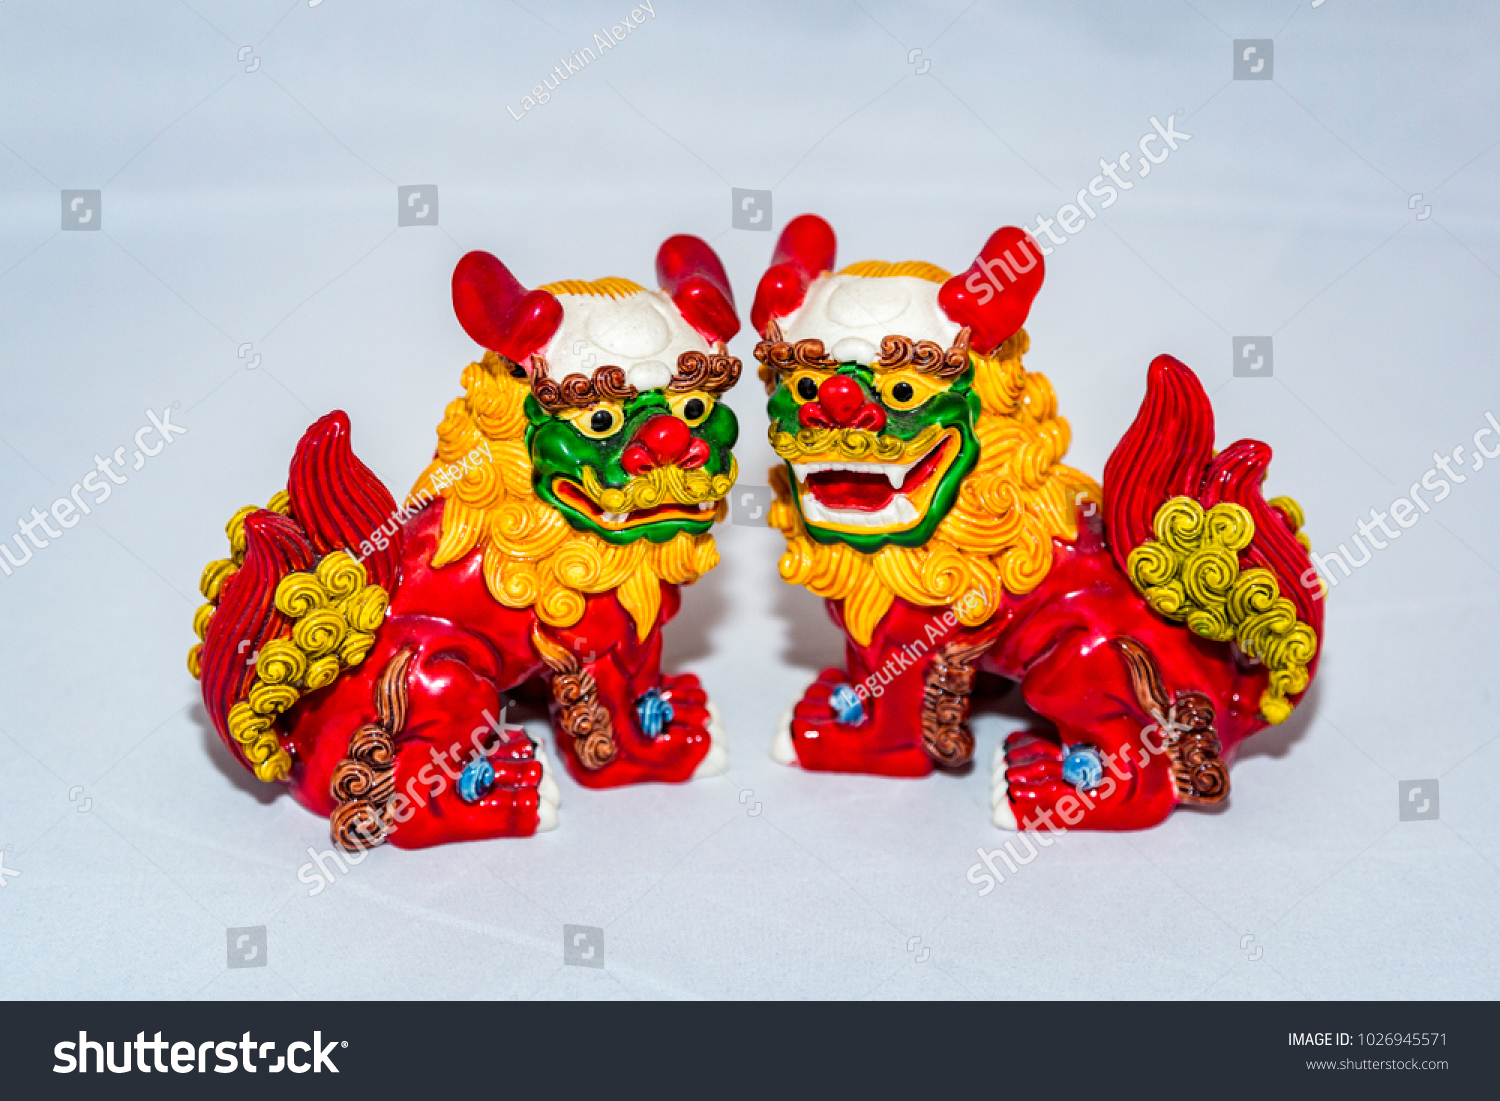 a small figure of a multi colored dragon of asian themes